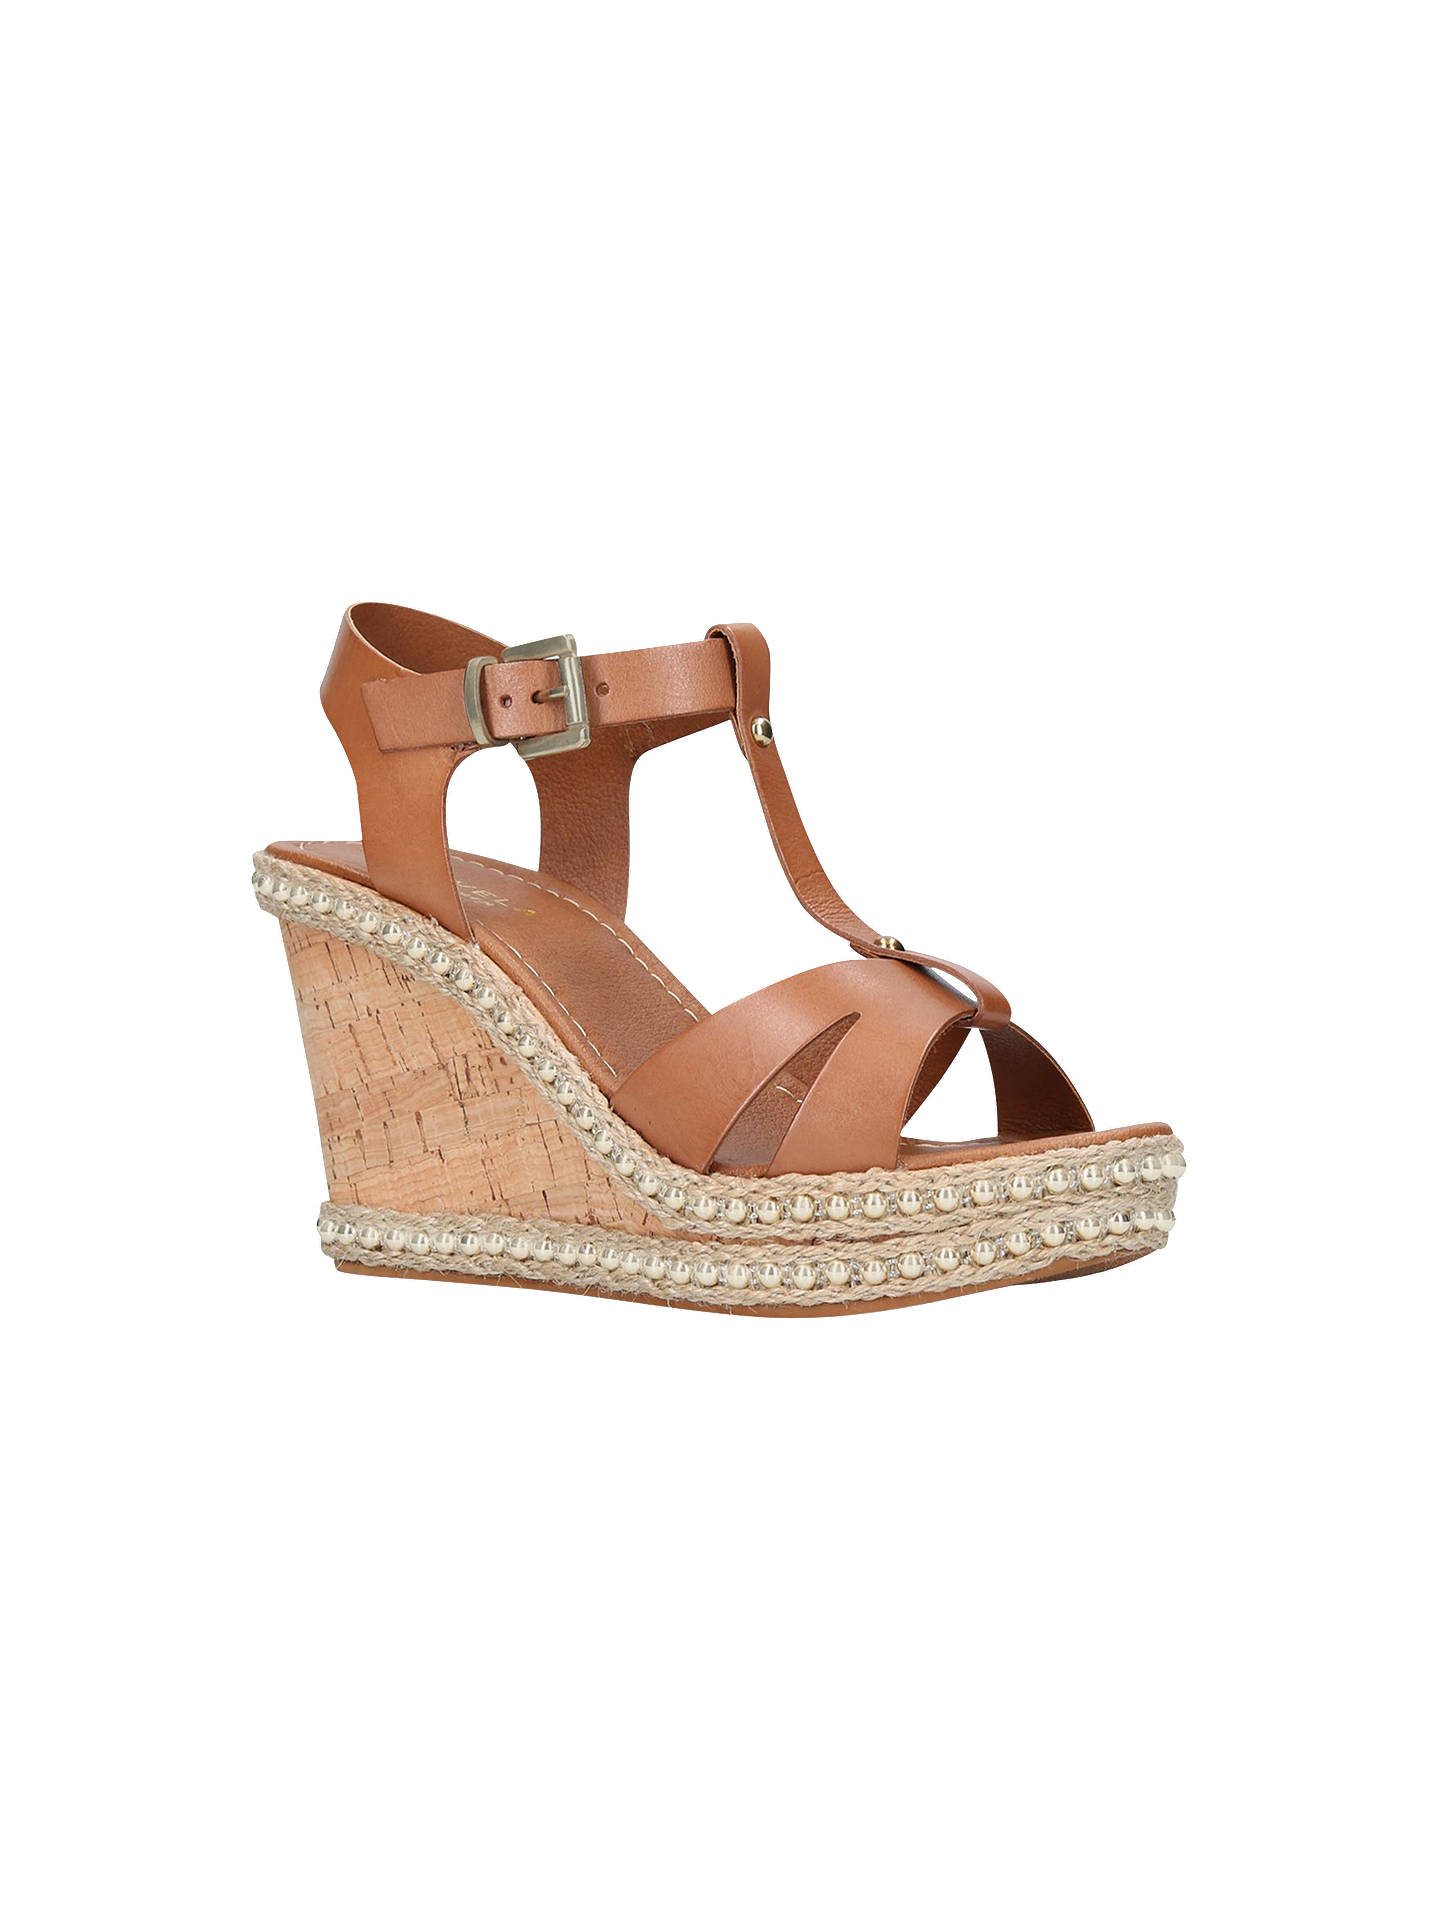 Buy Carvela Karoline T-Bar Wedge Heel Sandals, Tan Leather, 3 Online at johnlewis.com